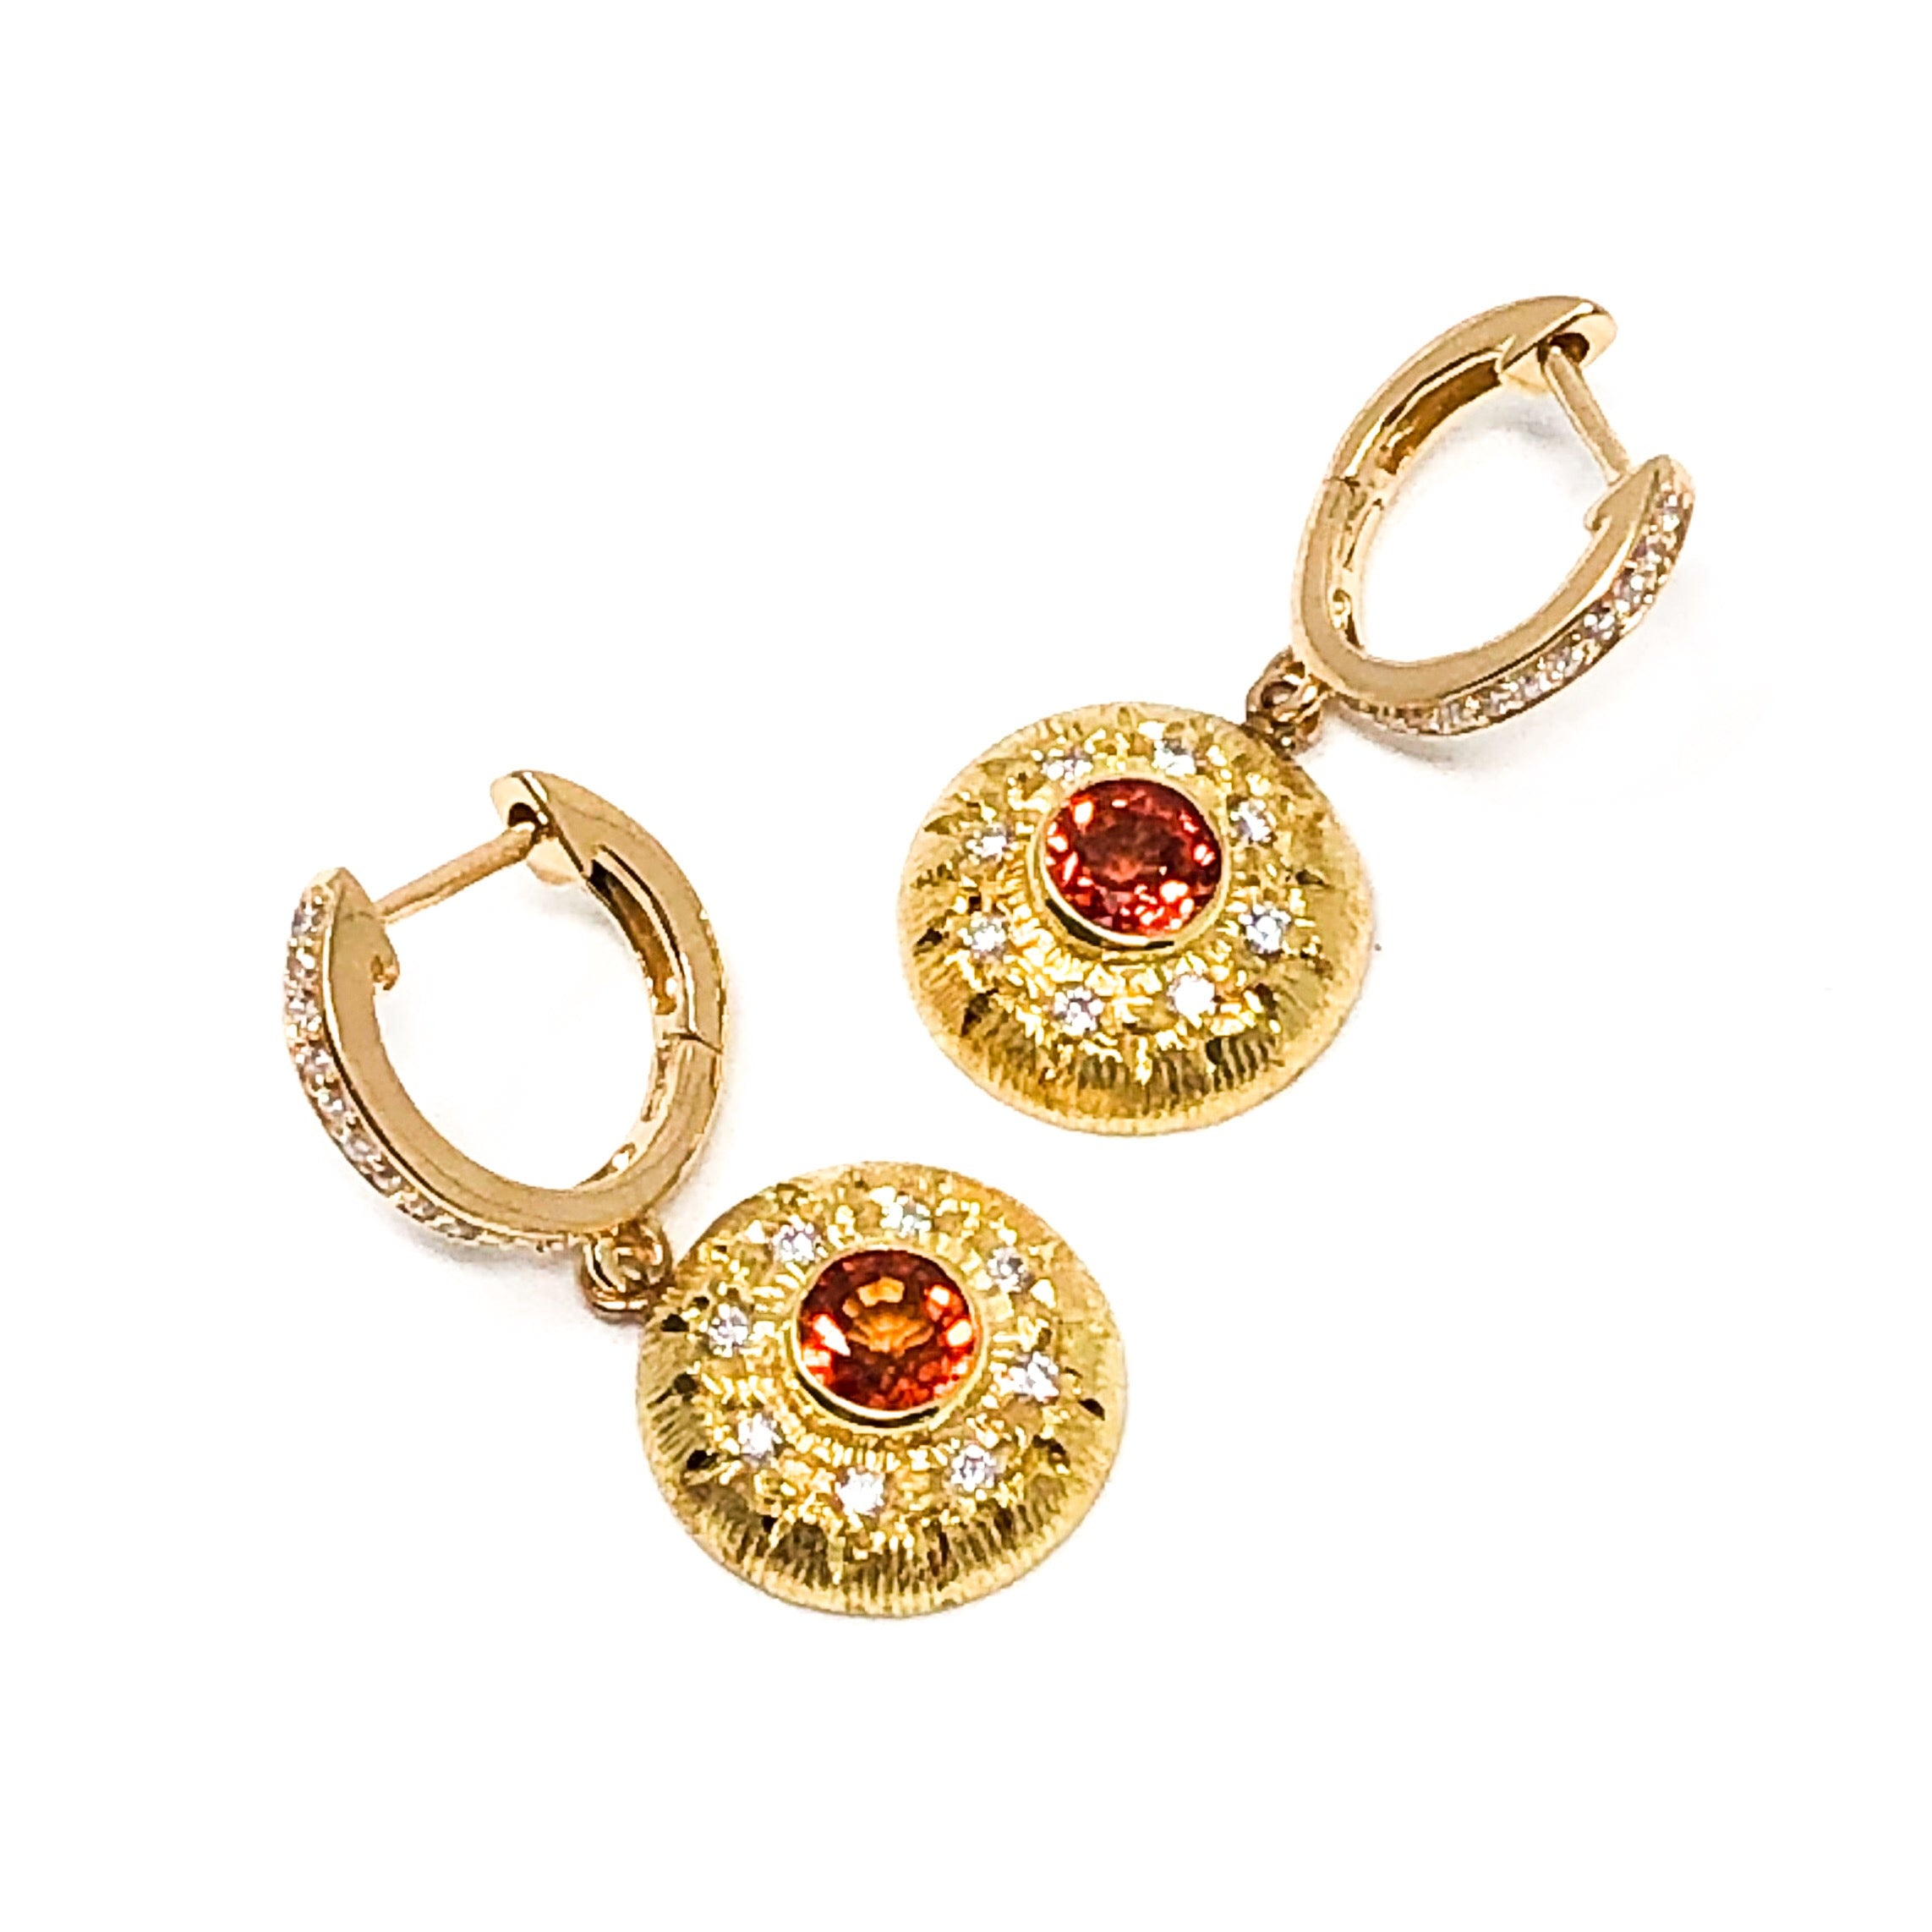 Orange Sapphire and Diamond Earrings